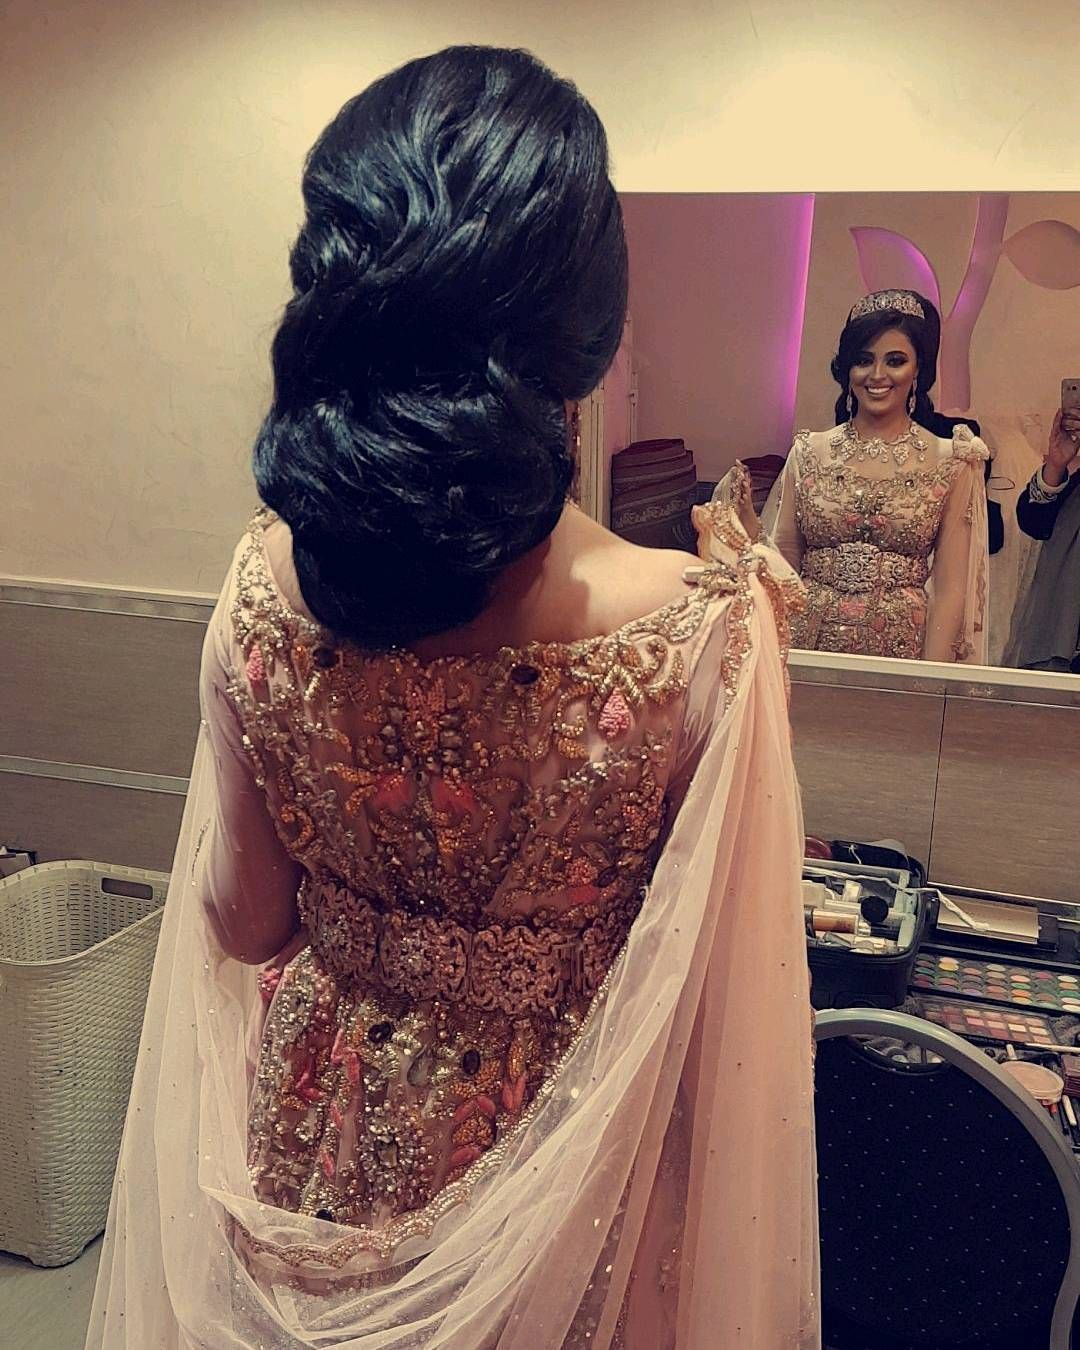 163 Mentions Jaime 5 Commentaires Beauty By Karima Jolie Clothing Aftan Dress Beautybykarima4 Sur Instagram Lovely Sahrawedding Bride Loved Her Beautiful Face And